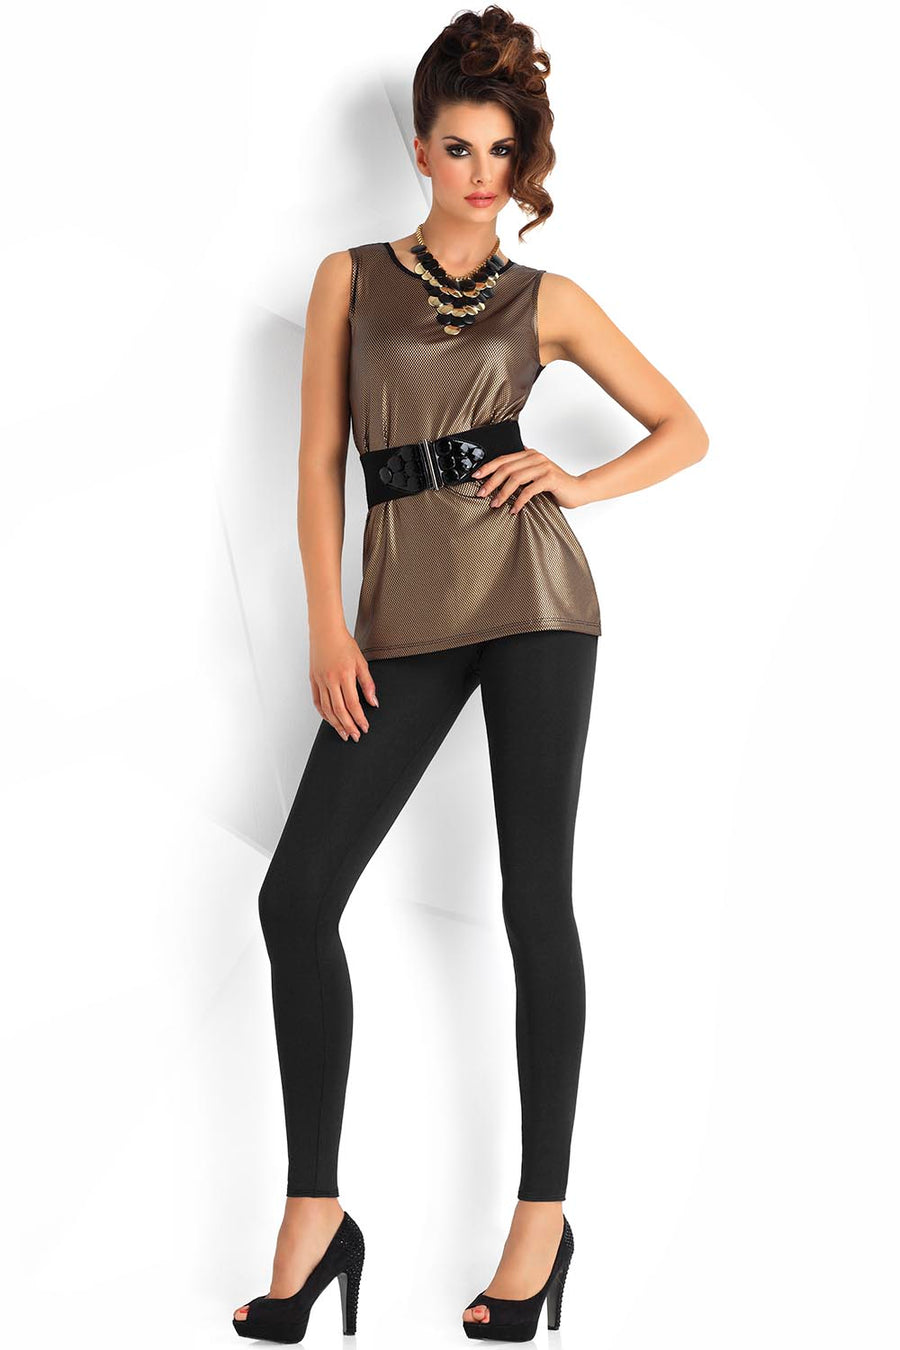 Leggins model 66281 Ewlon Trendy Legs